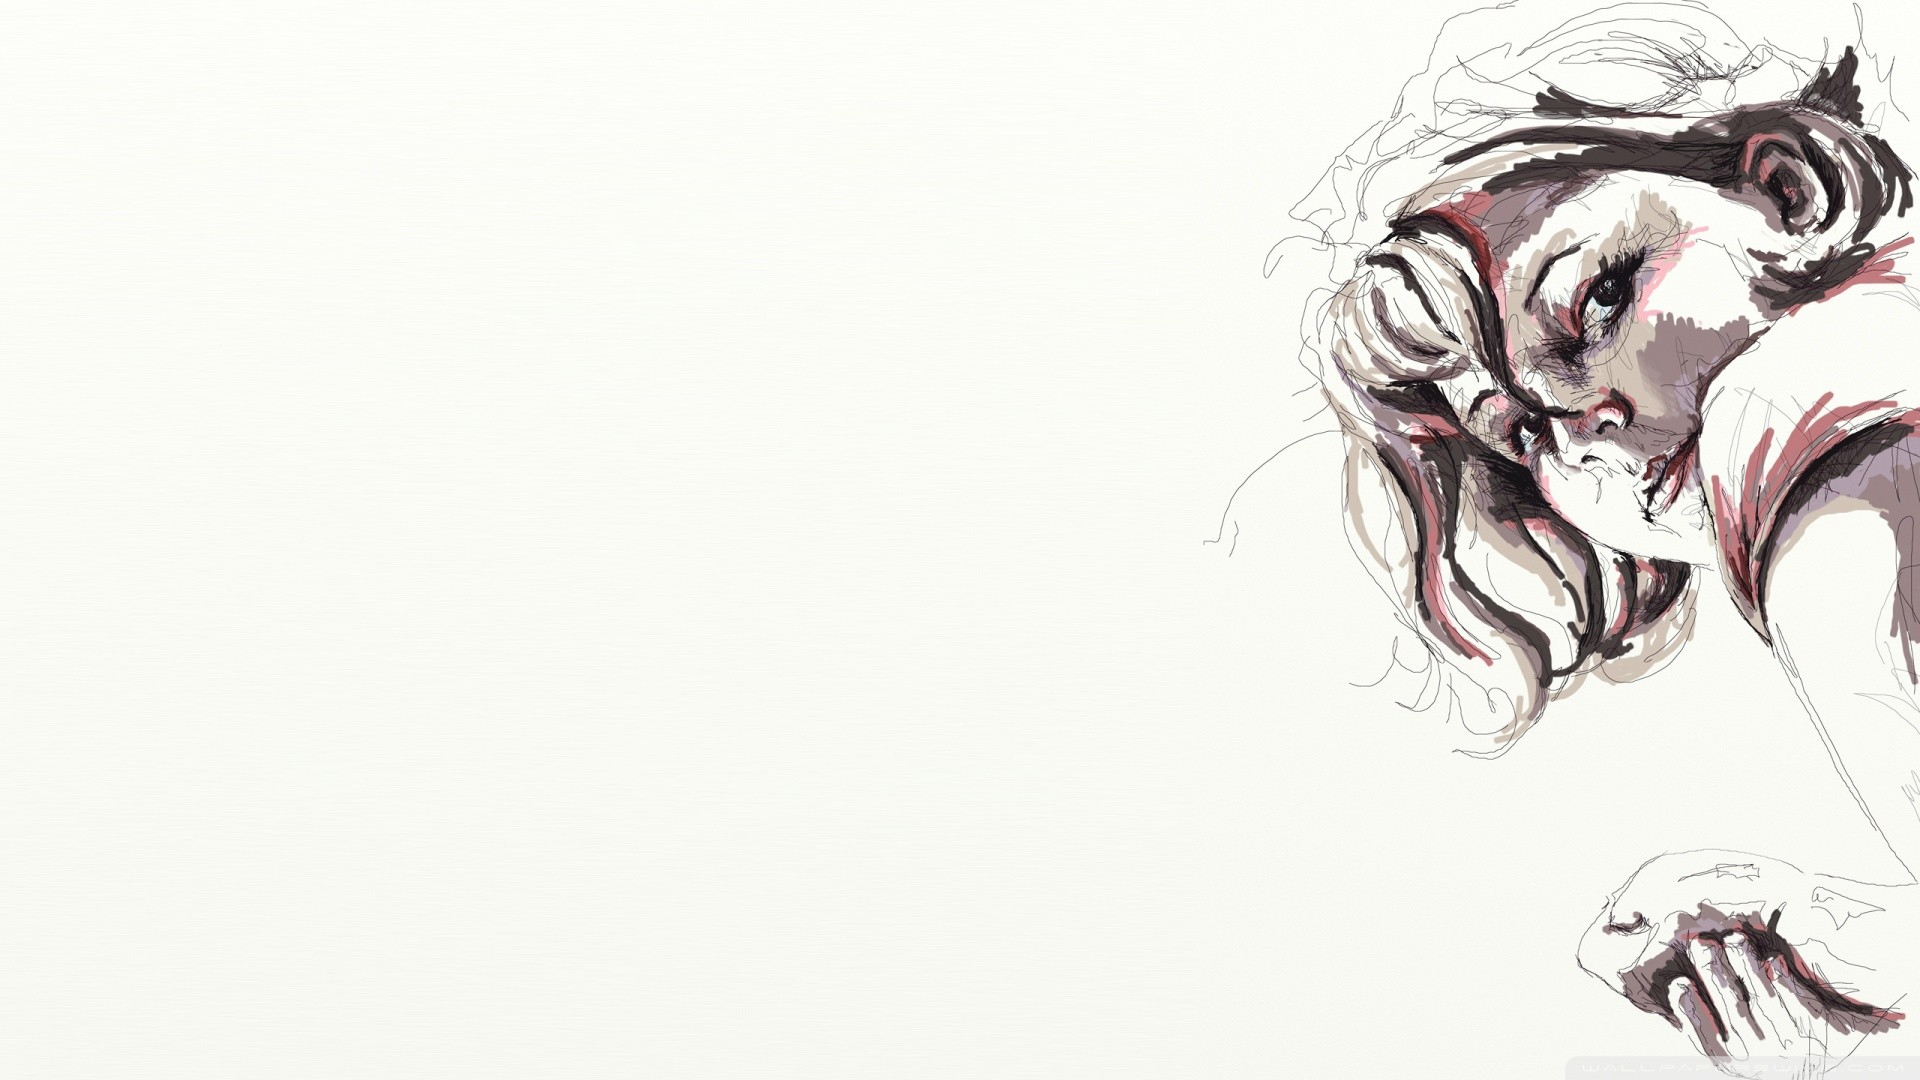 Must see Wallpaper Naruto Sketch - 779039-sketches-wallpapers-1920x1080-screen  Pictures.jpg